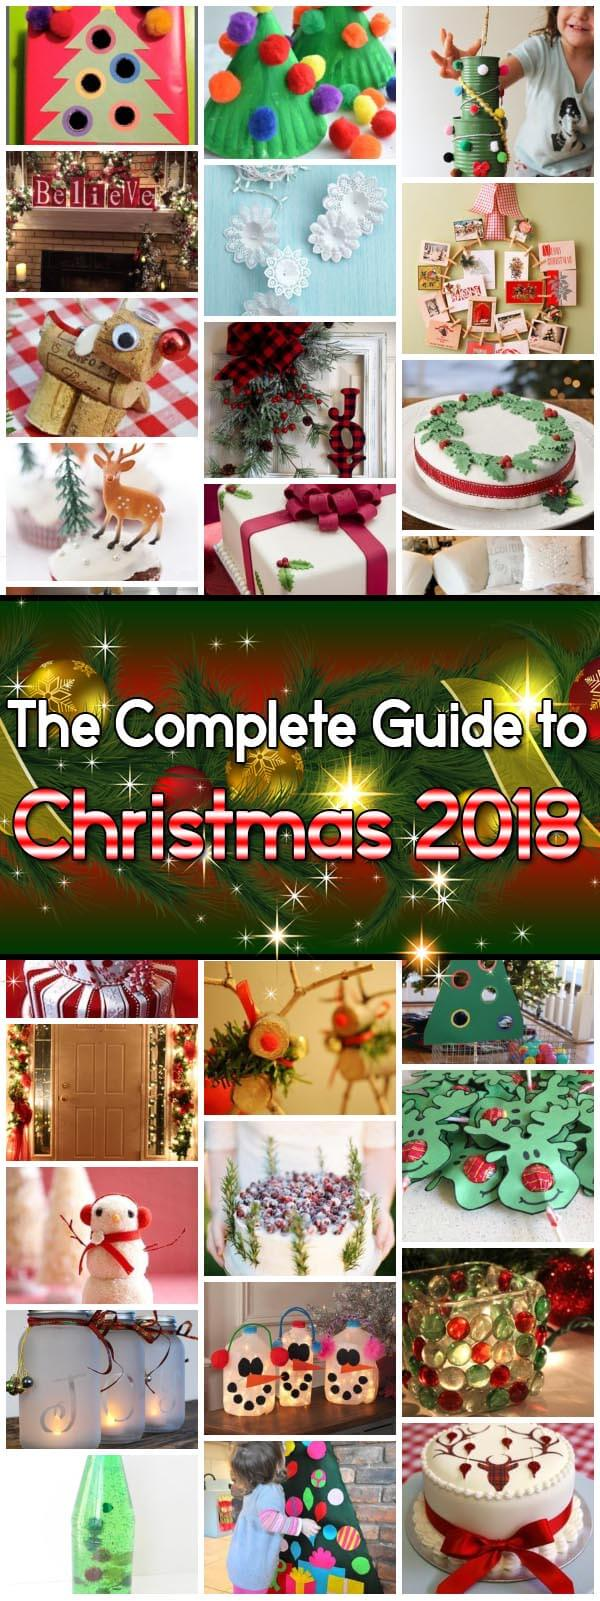 The Complete Guide to Christmas 2018 - Holiday Vault